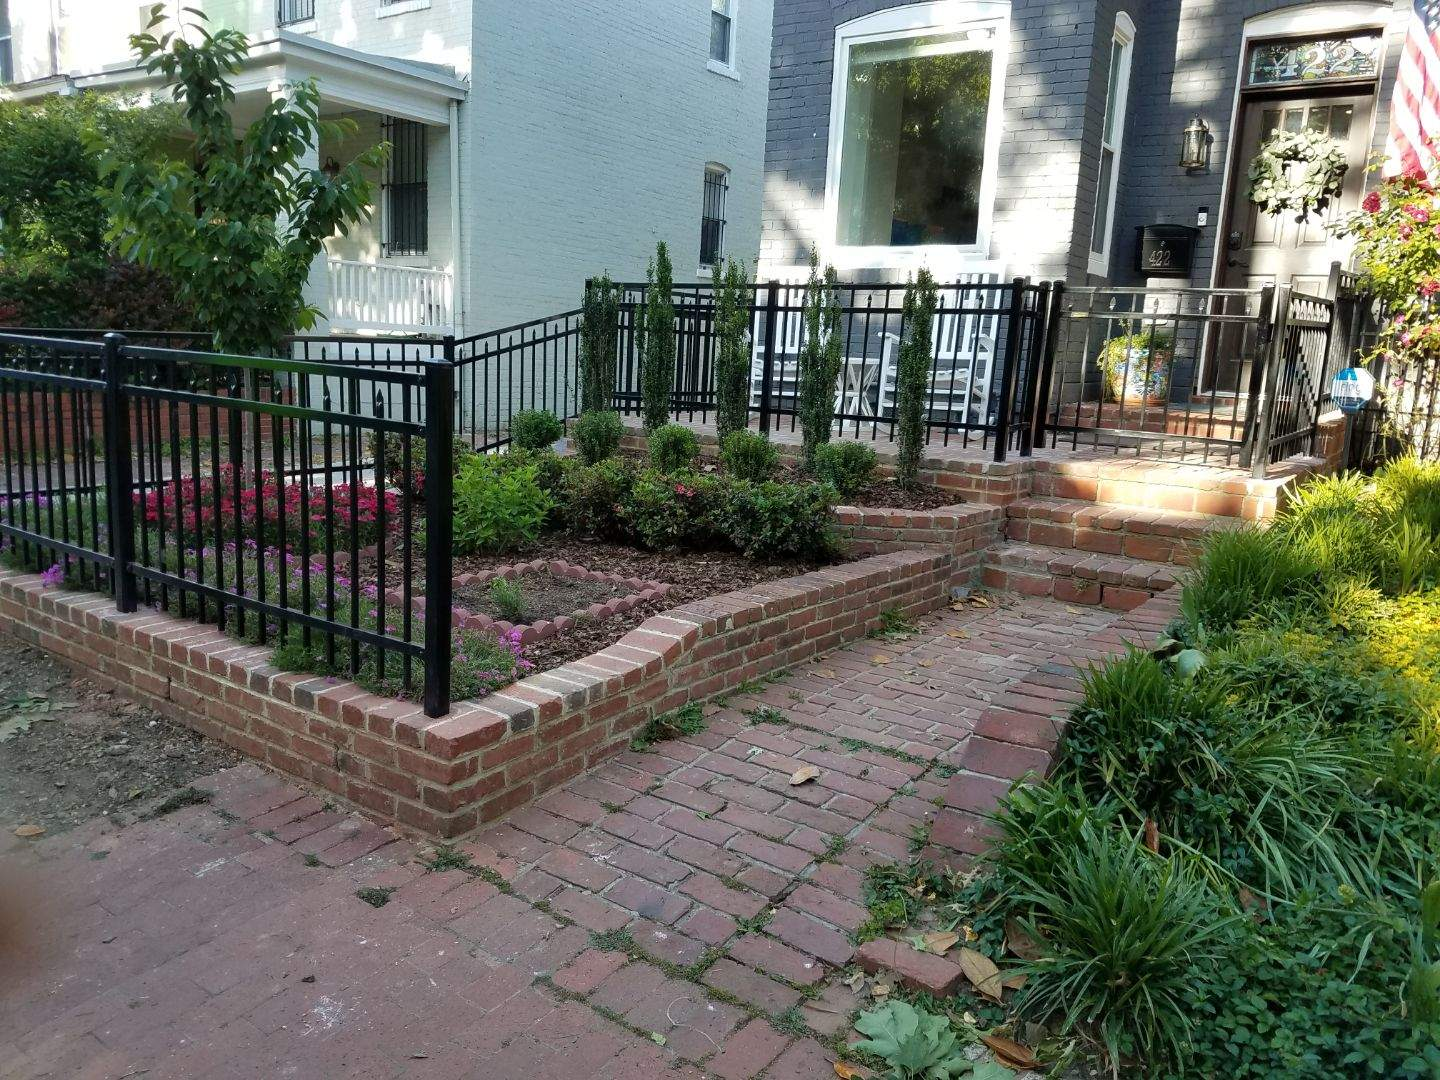 4ft Ornamental Wrought Iron Fence in Brick Wall in Washington DC